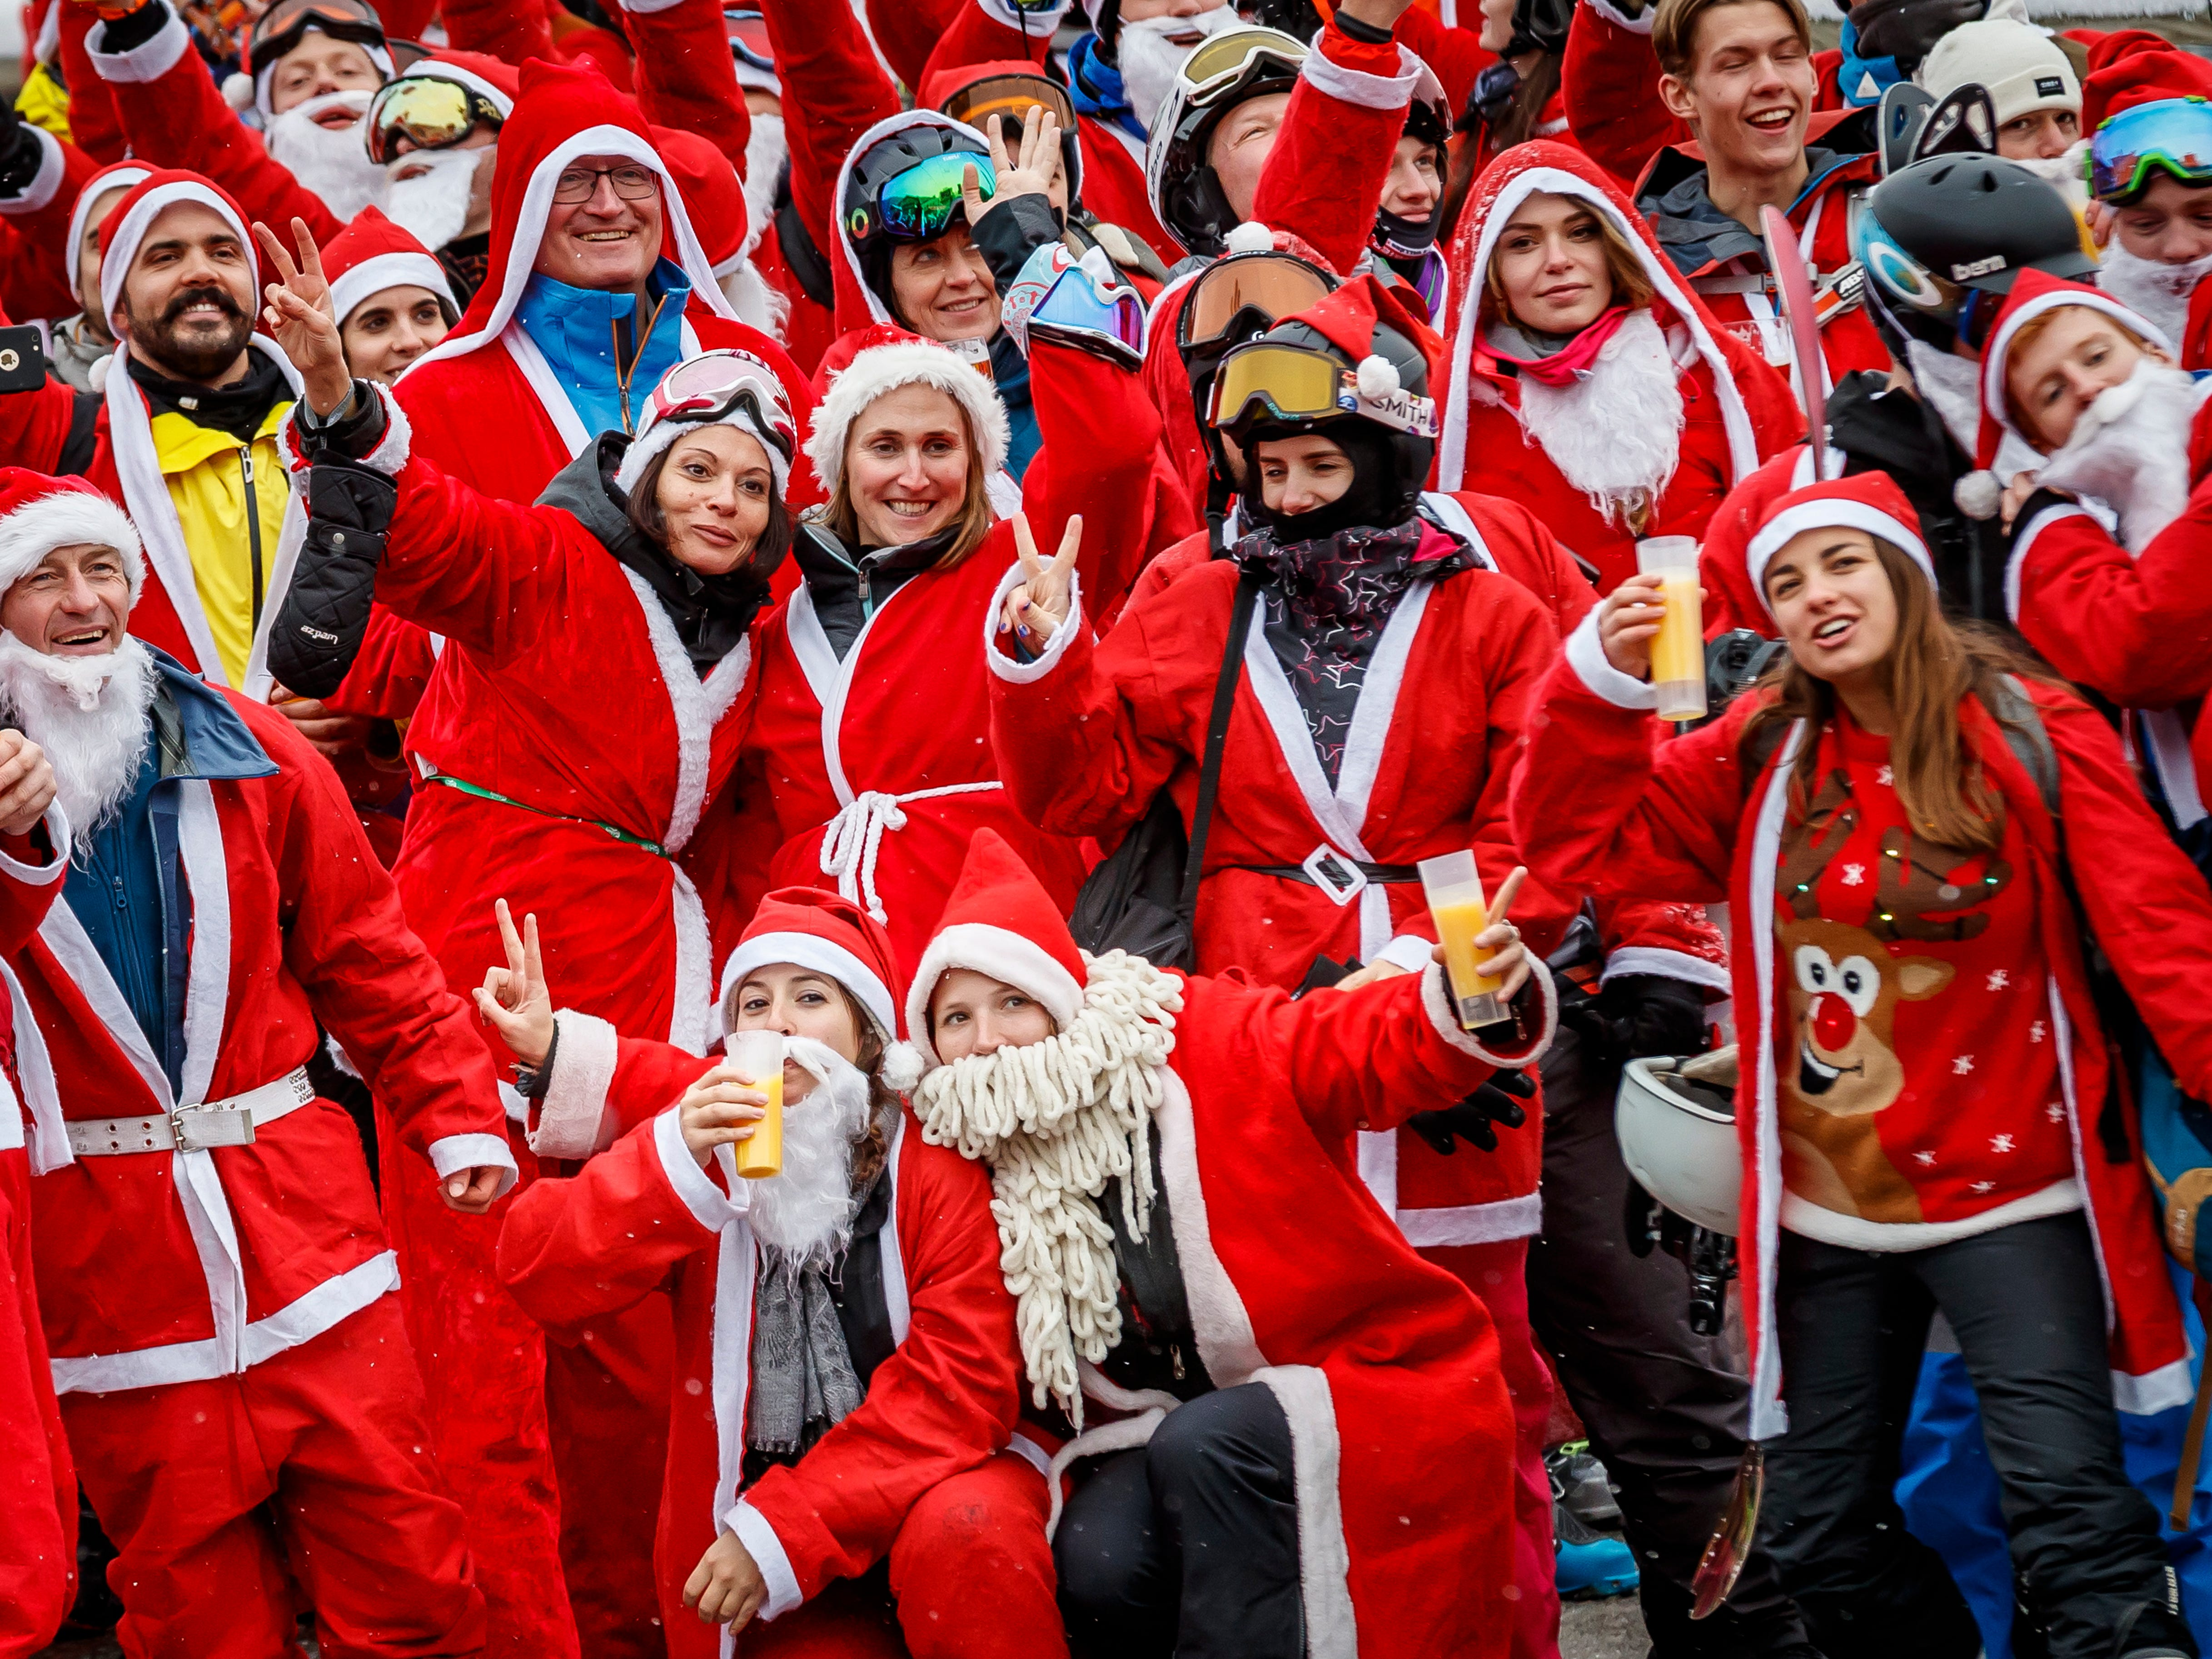 People dressed as Santa Claus gather for a group picture in the alpine ski resort of Verbier, Switzerland on Dec. 8, 2018. 3015 skiers and snow boarders dressed as Santa Claus and Saint Nicholas were granted discounted 5 Swiss franc access pass to the ski resort as a promotional event to celebrate the opening of the ski season.